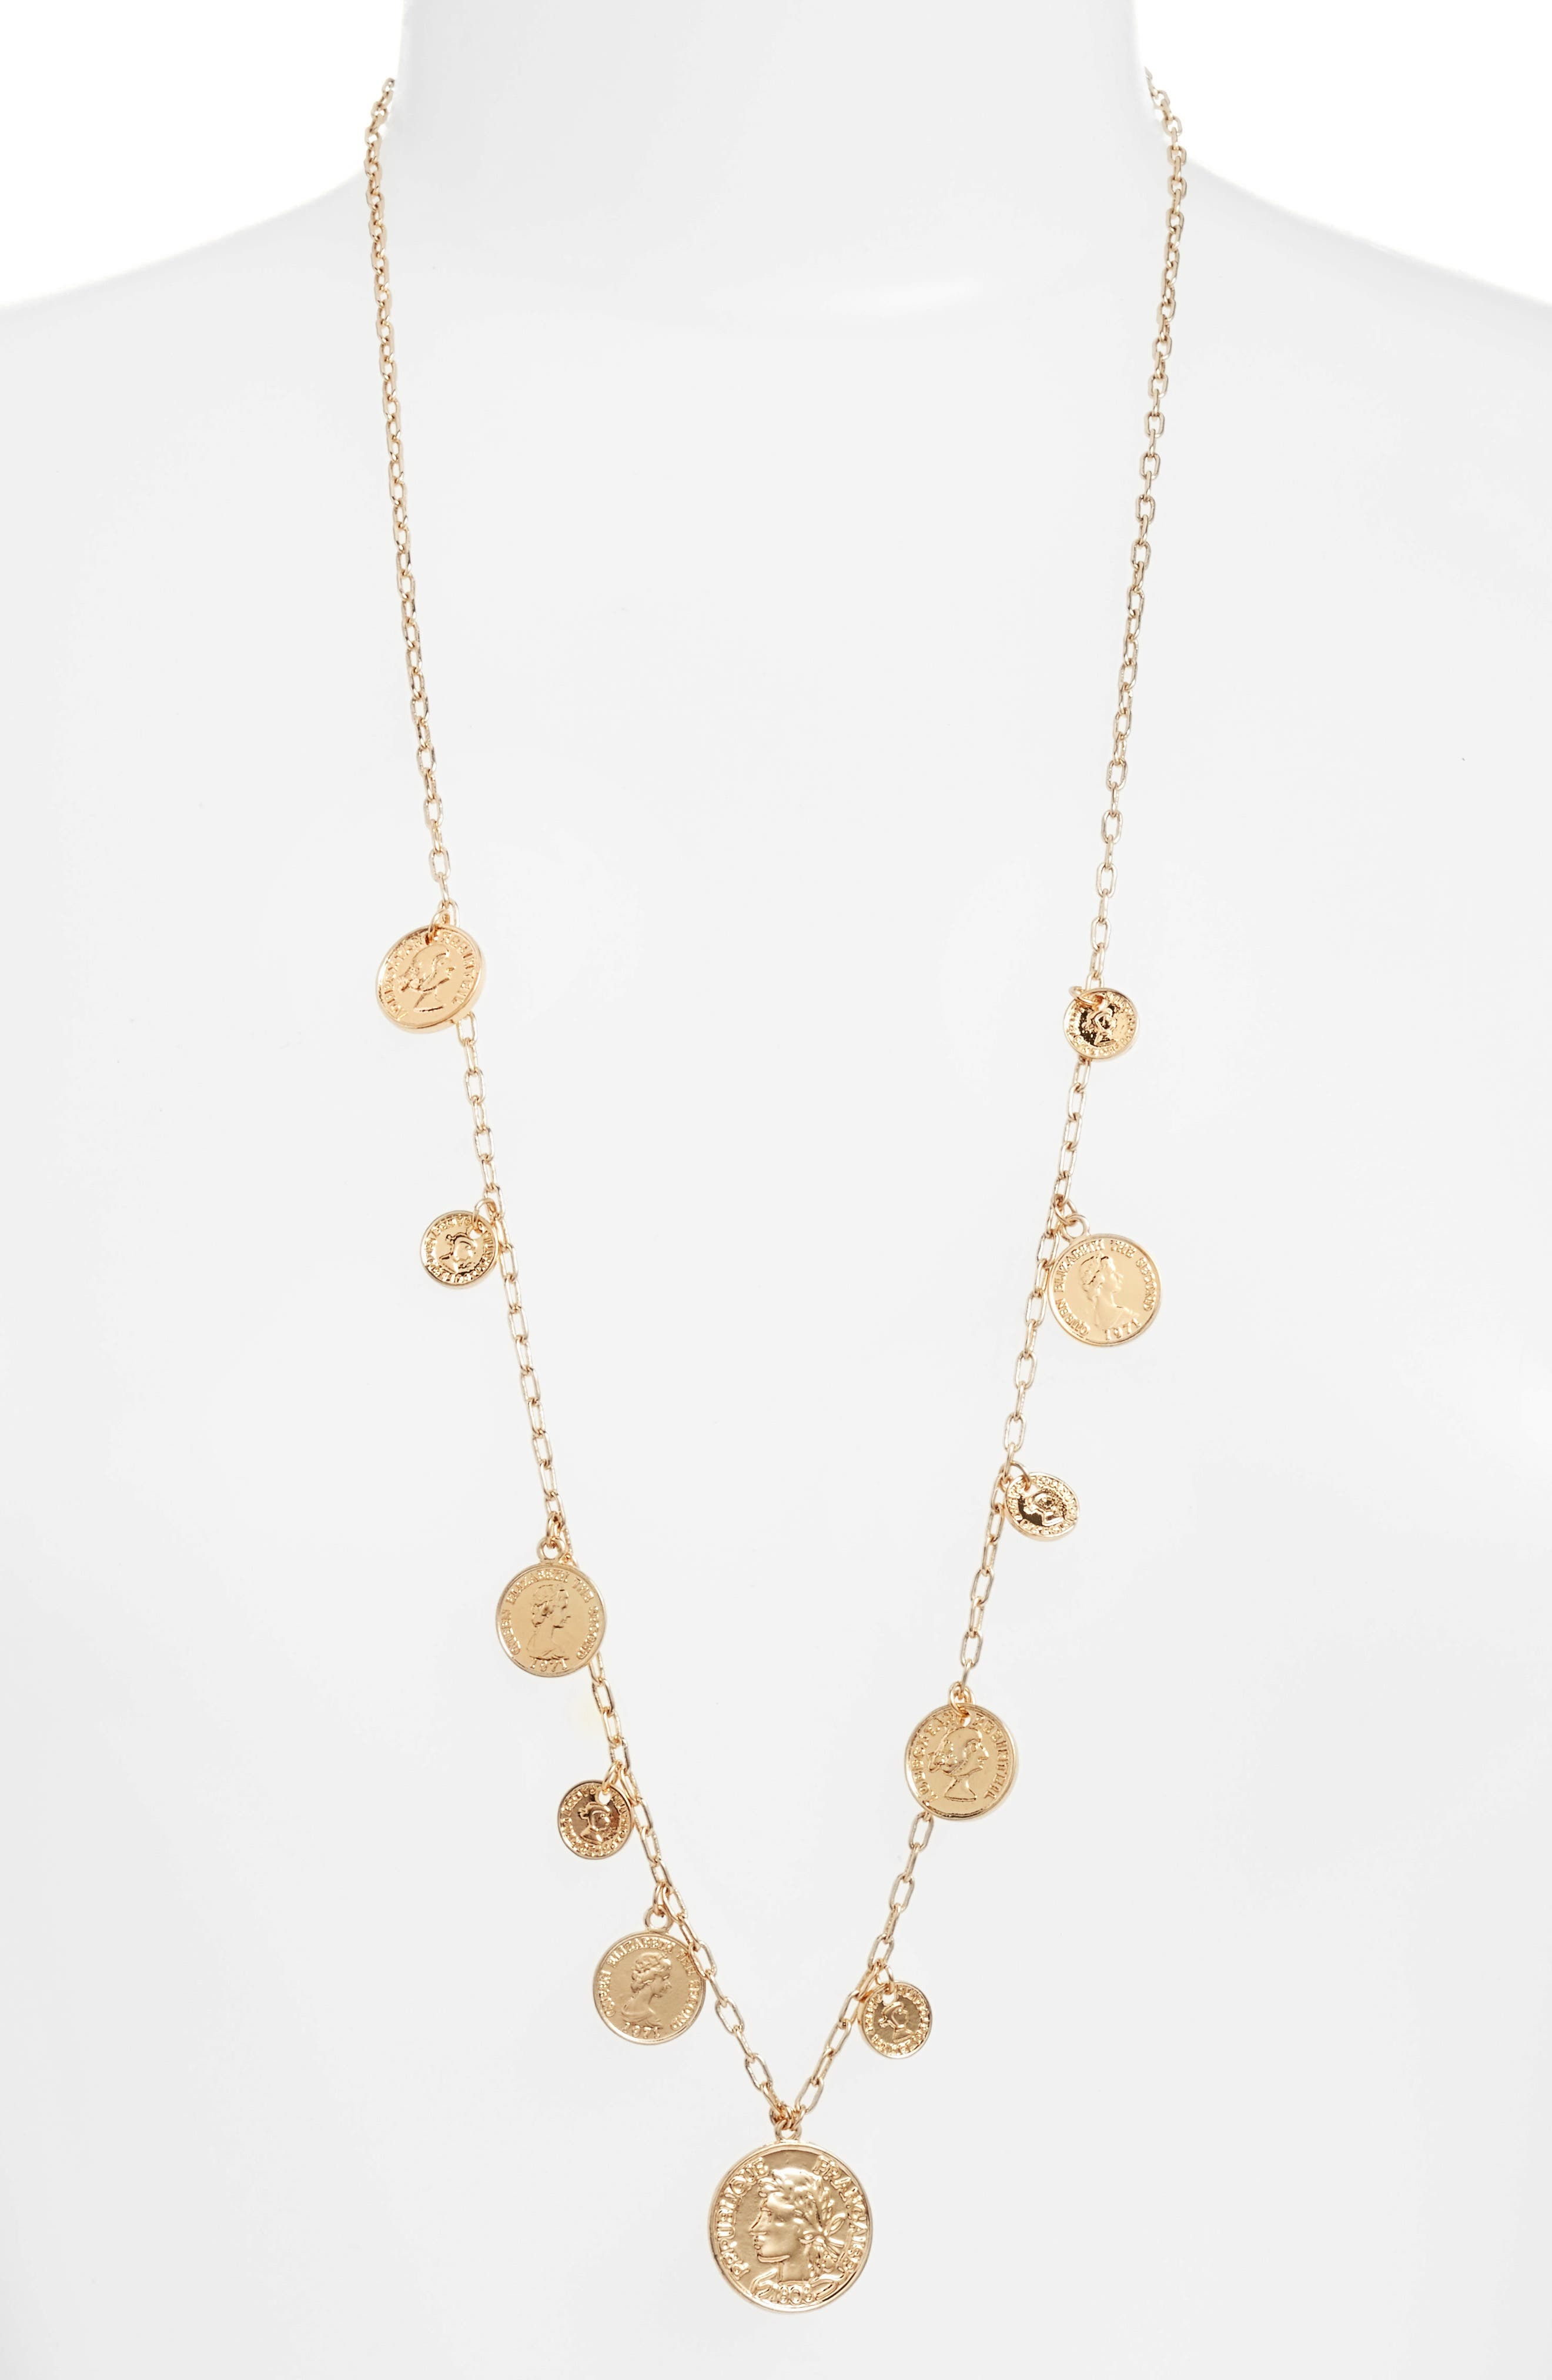 Coin Charm Necklace,                             Main thumbnail 1, color,                             710